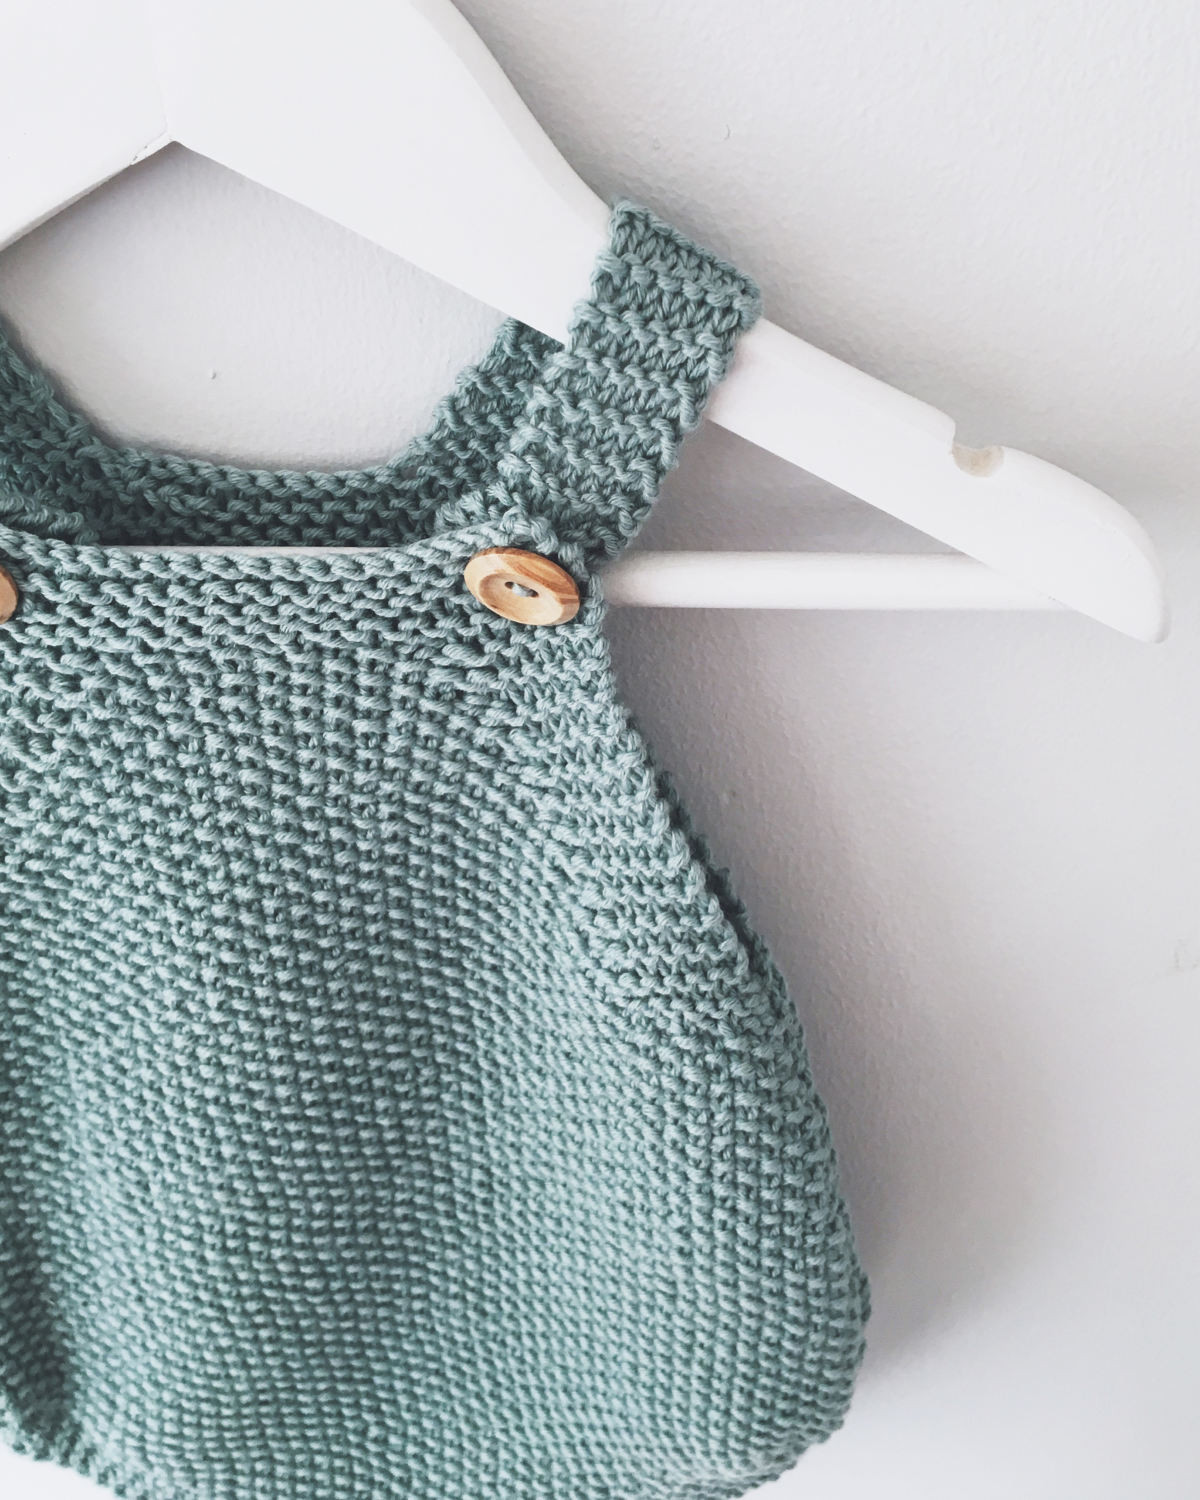 Best Of Baby Romper Knitting Pattern Mio Knitted Playsuit Pdf Knitted Baby Romper Of Amazing 42 Ideas Knitted Baby Romper